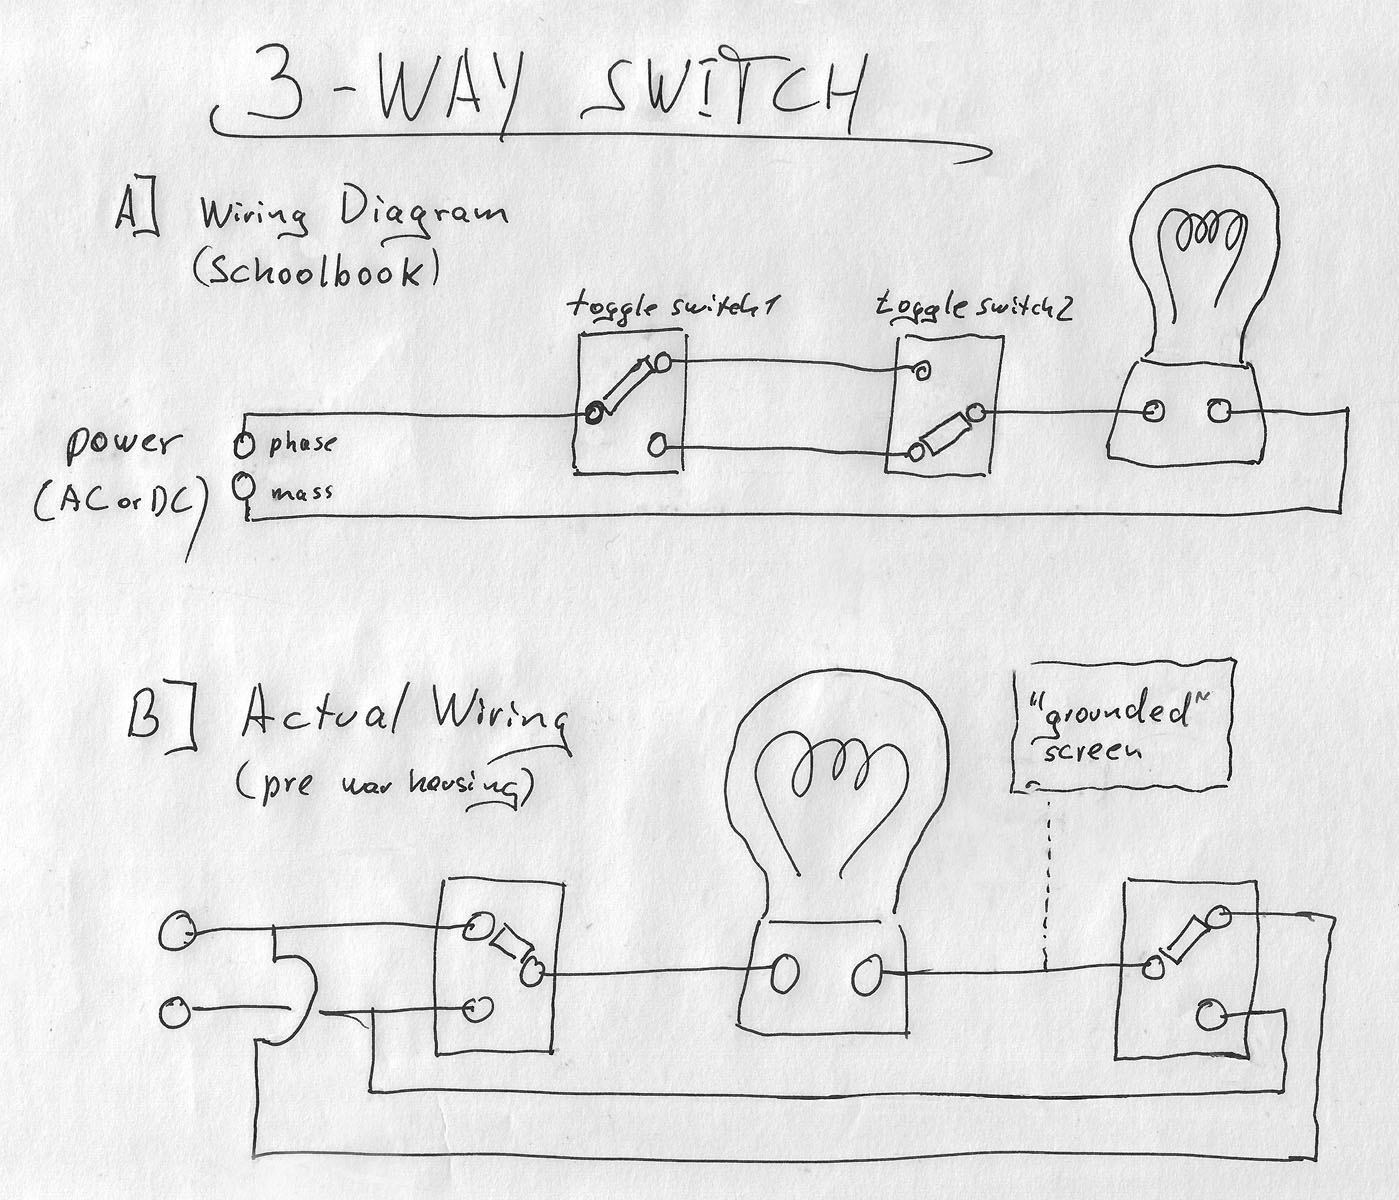 Simple Switchboard Wiring Diagram : 33 Wiring Diagram